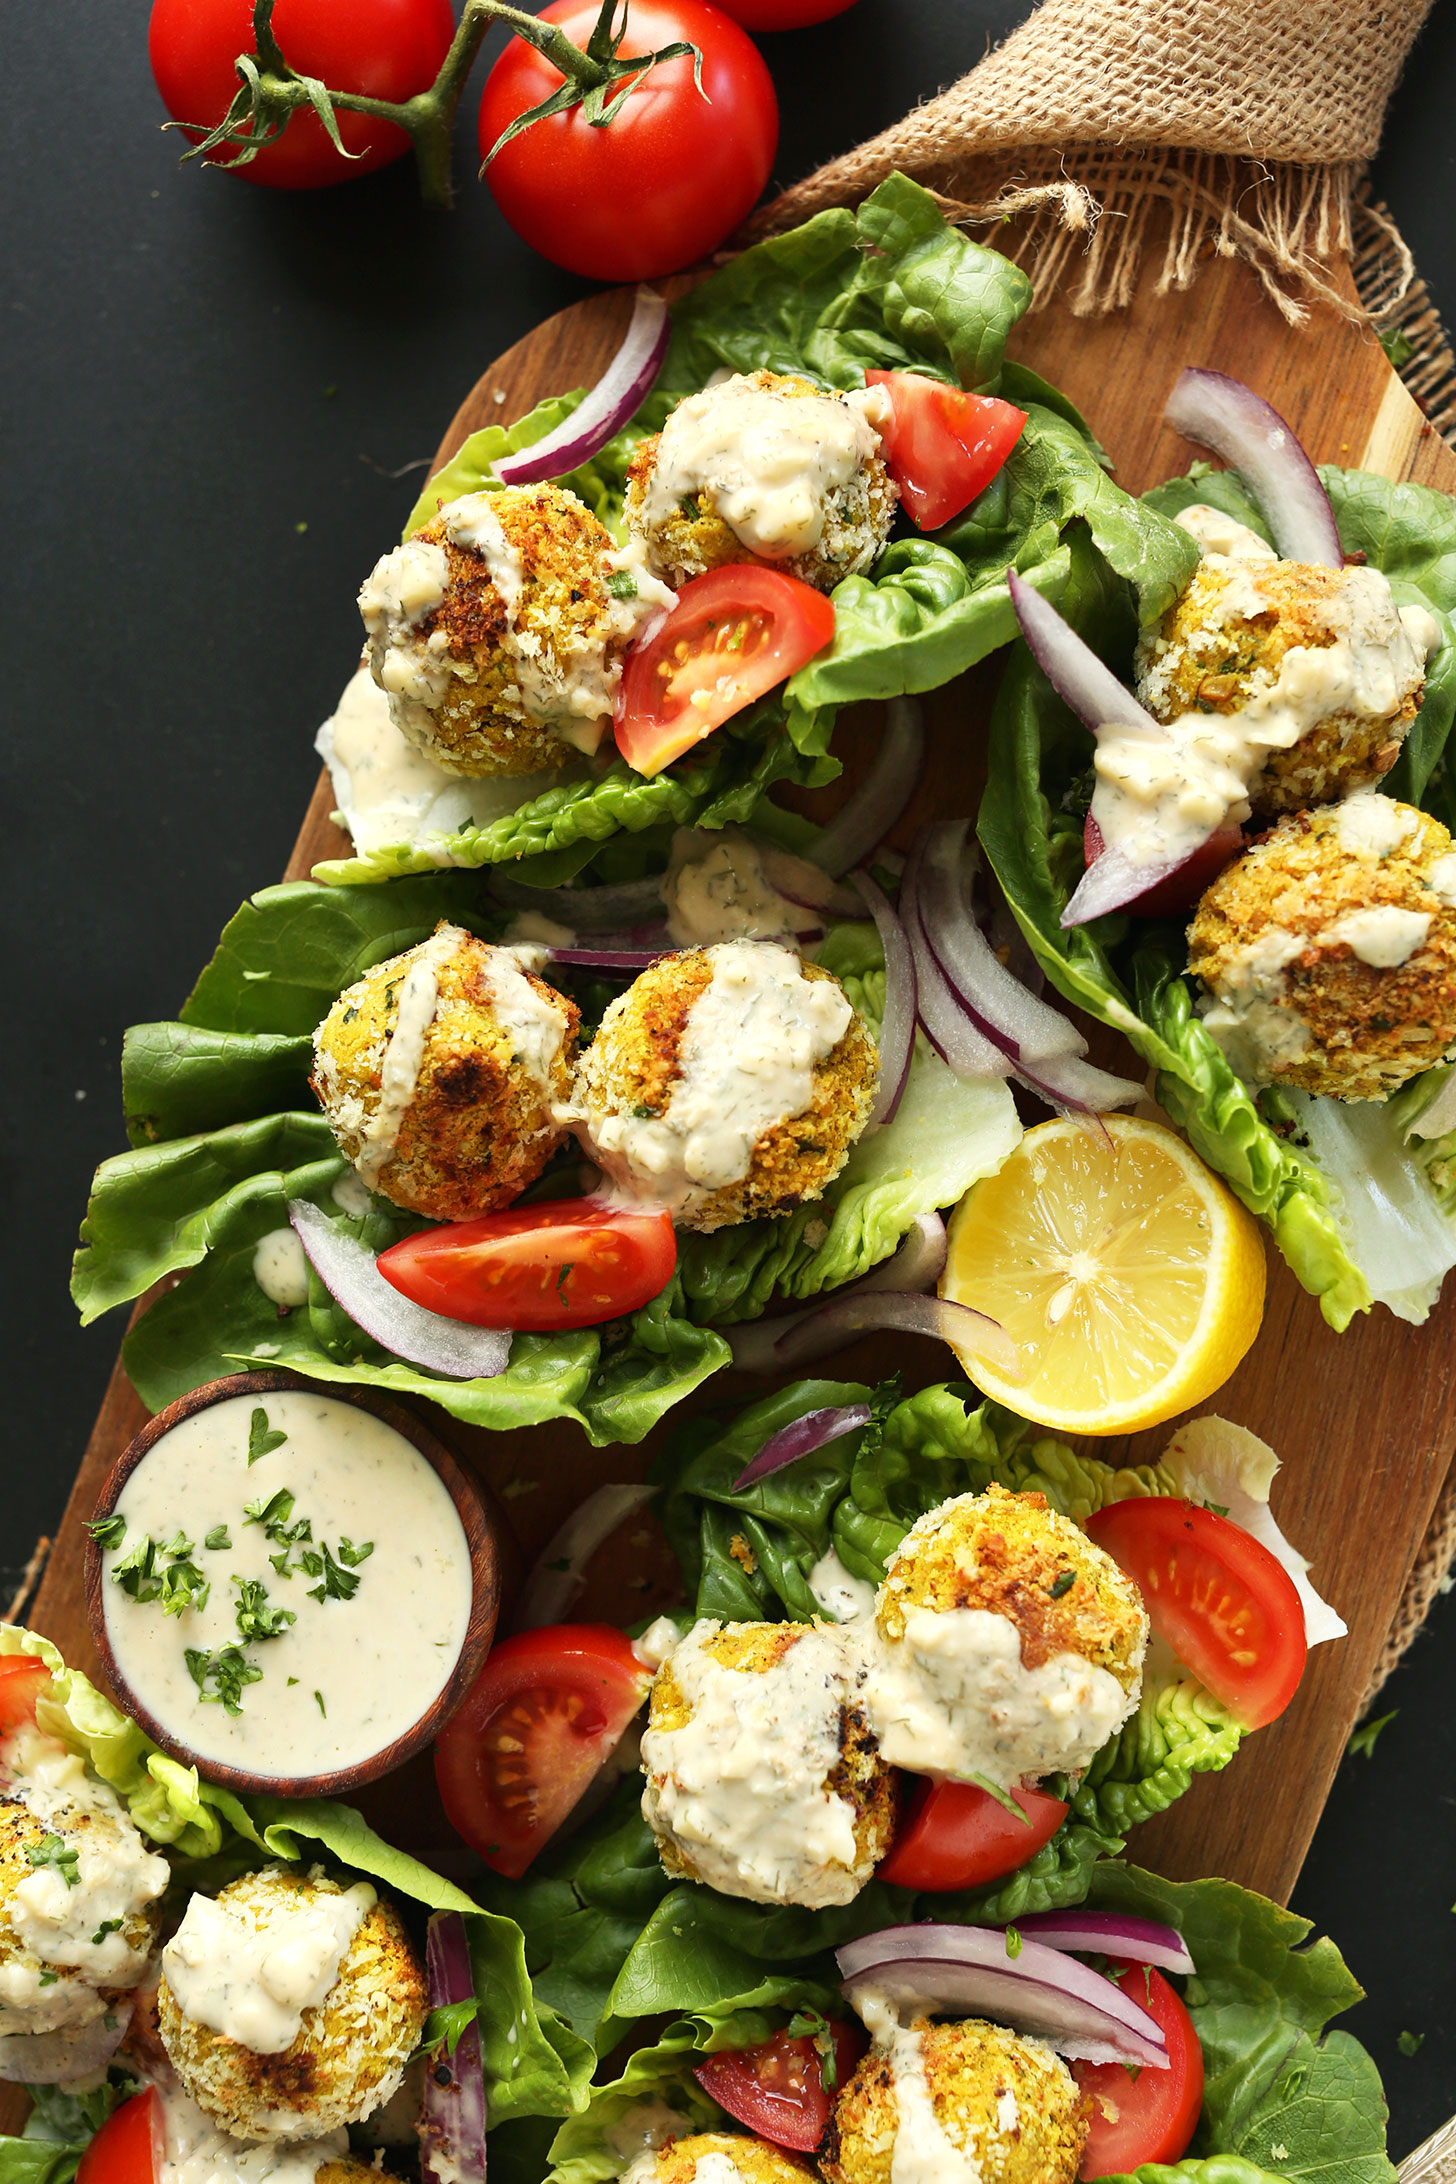 Lettuce wraps filled with our Turmeric Chickpea Fritters recipe and fresh vegetables